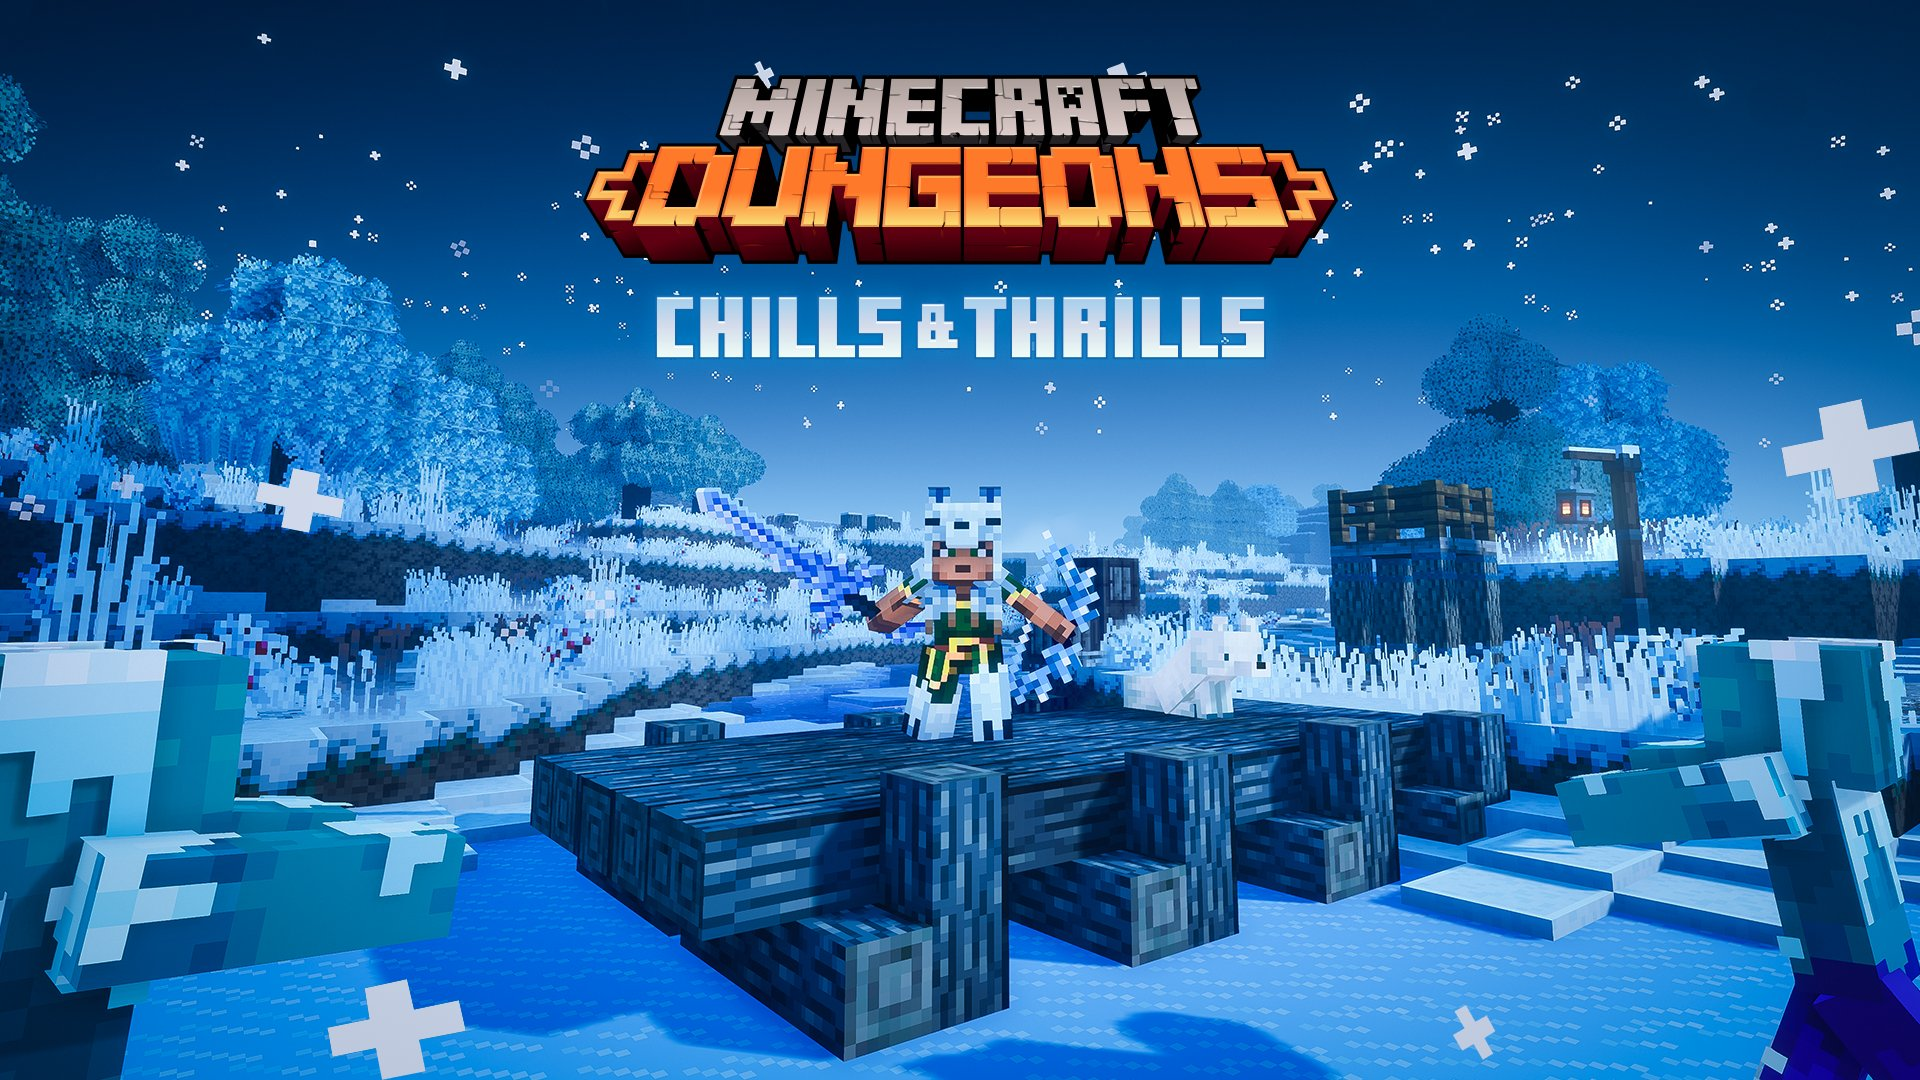 Minecraft Dungeons update out now (version 110.110.110.10), Chills